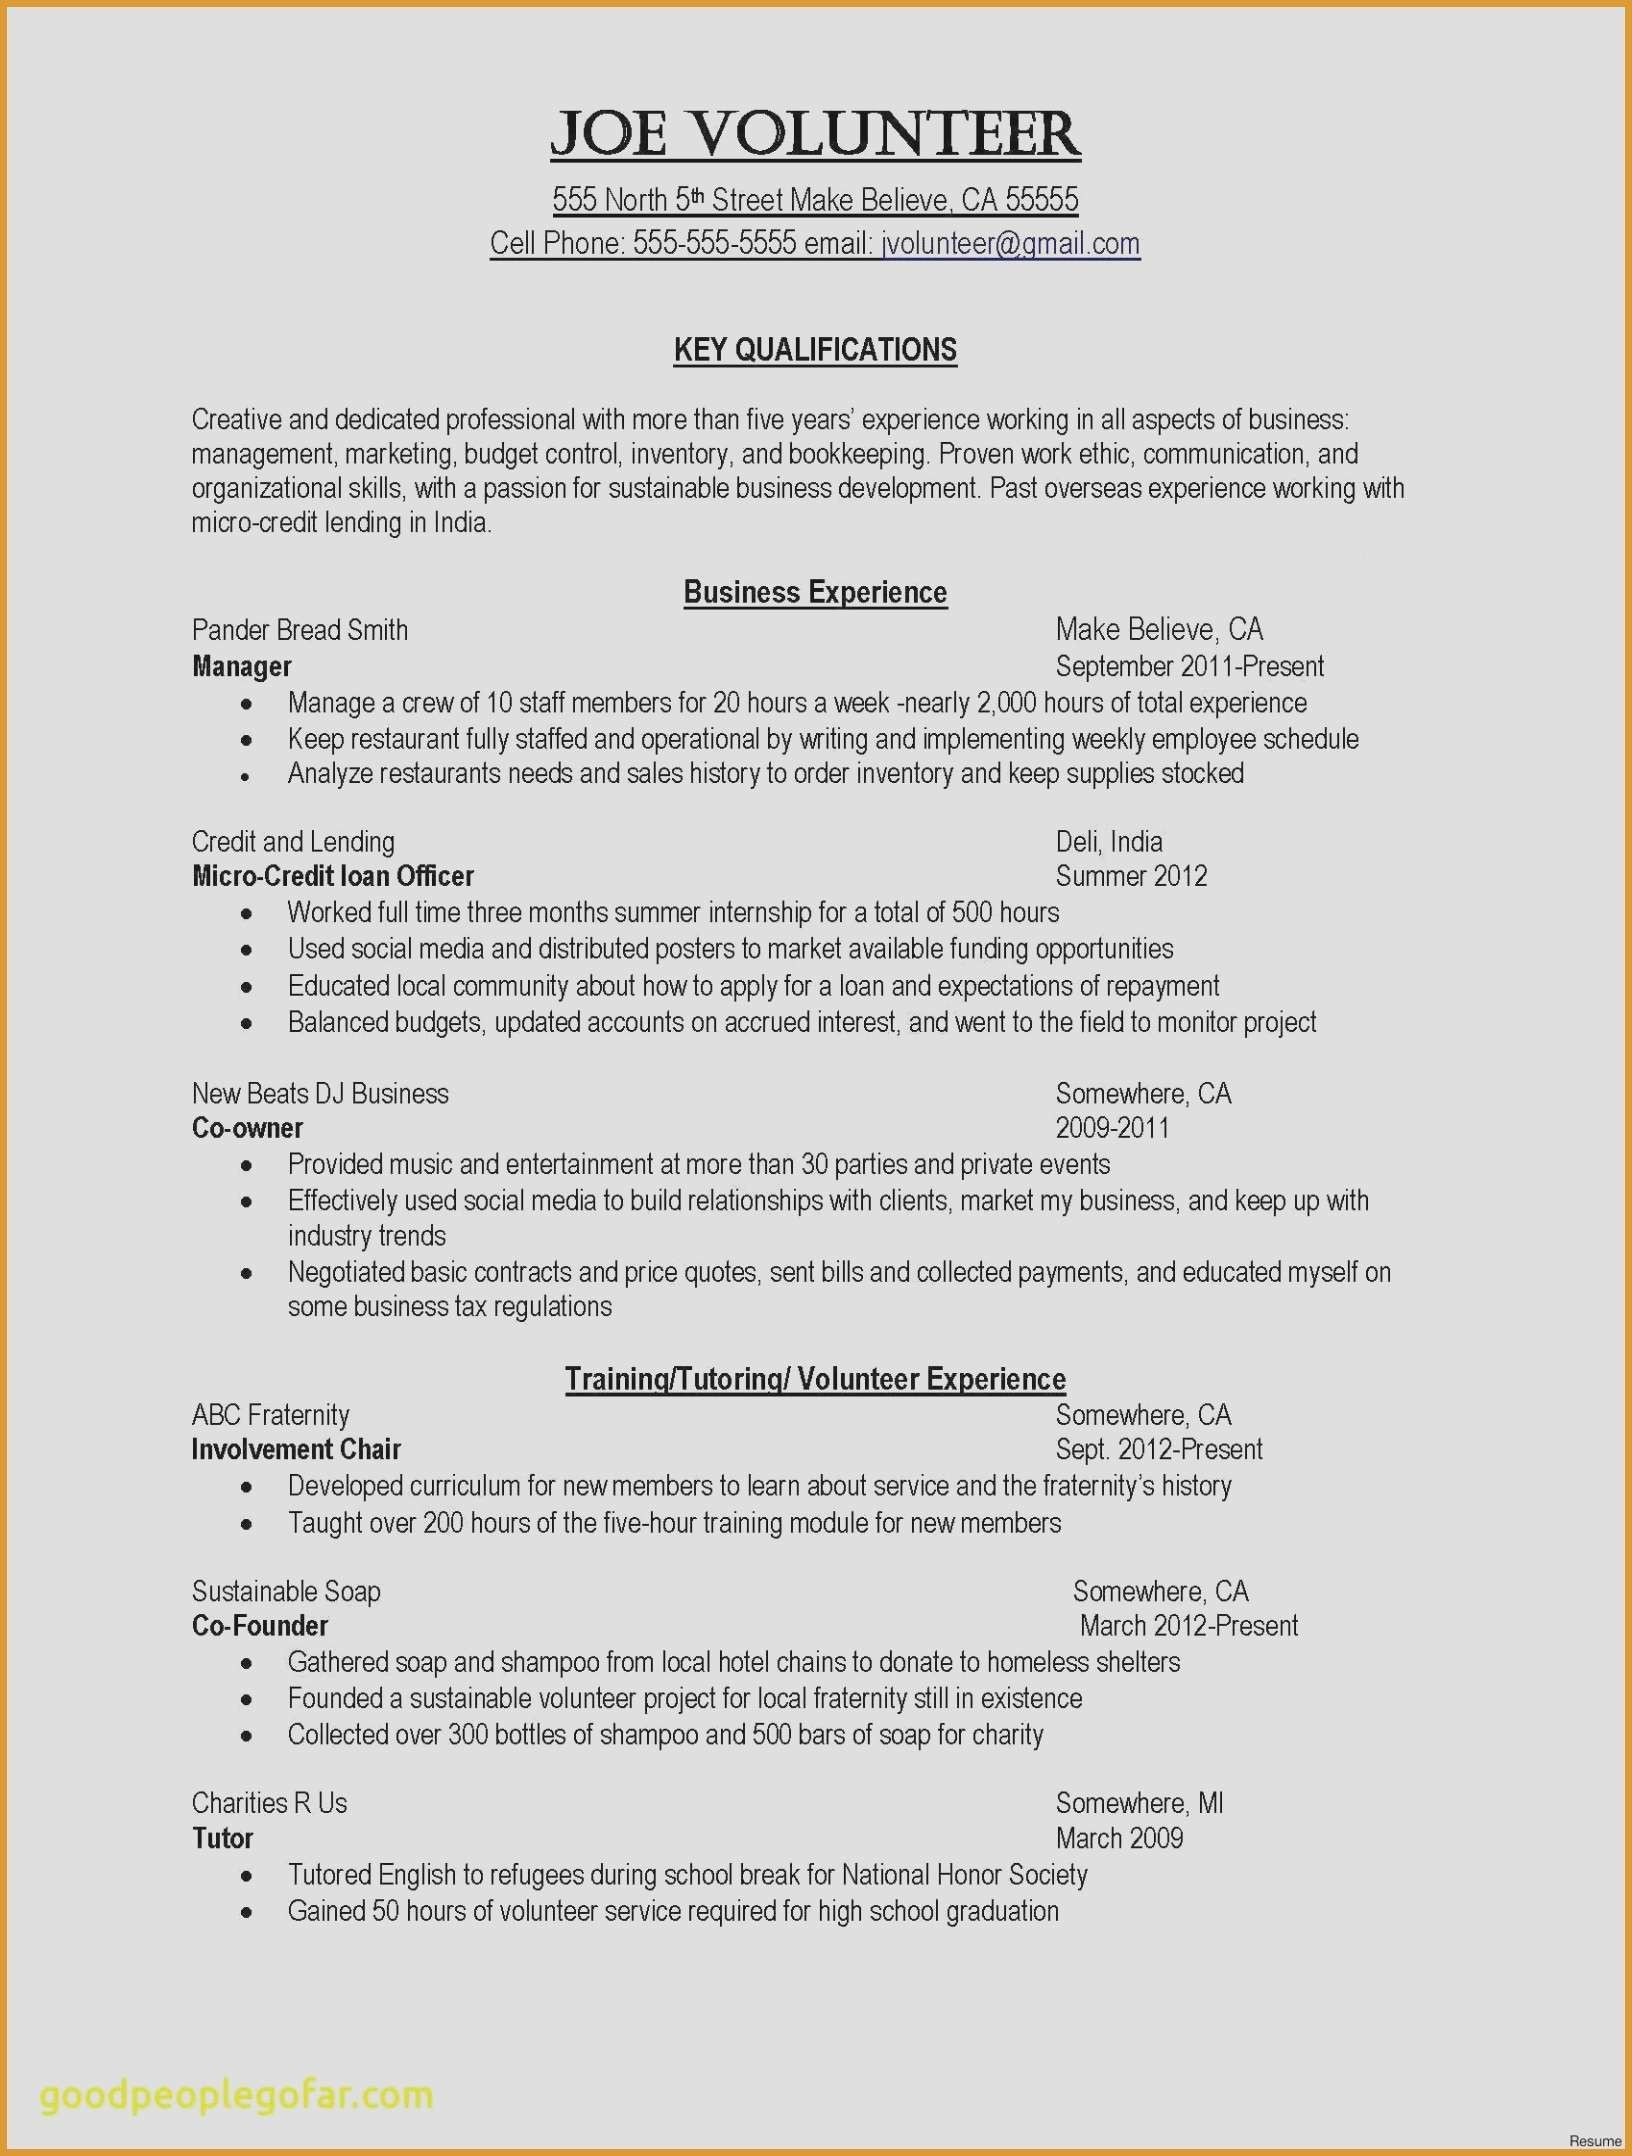 Dishwasher Job Description Sample - Dishwasher Job Description for Resume Surprising Type A Resume New